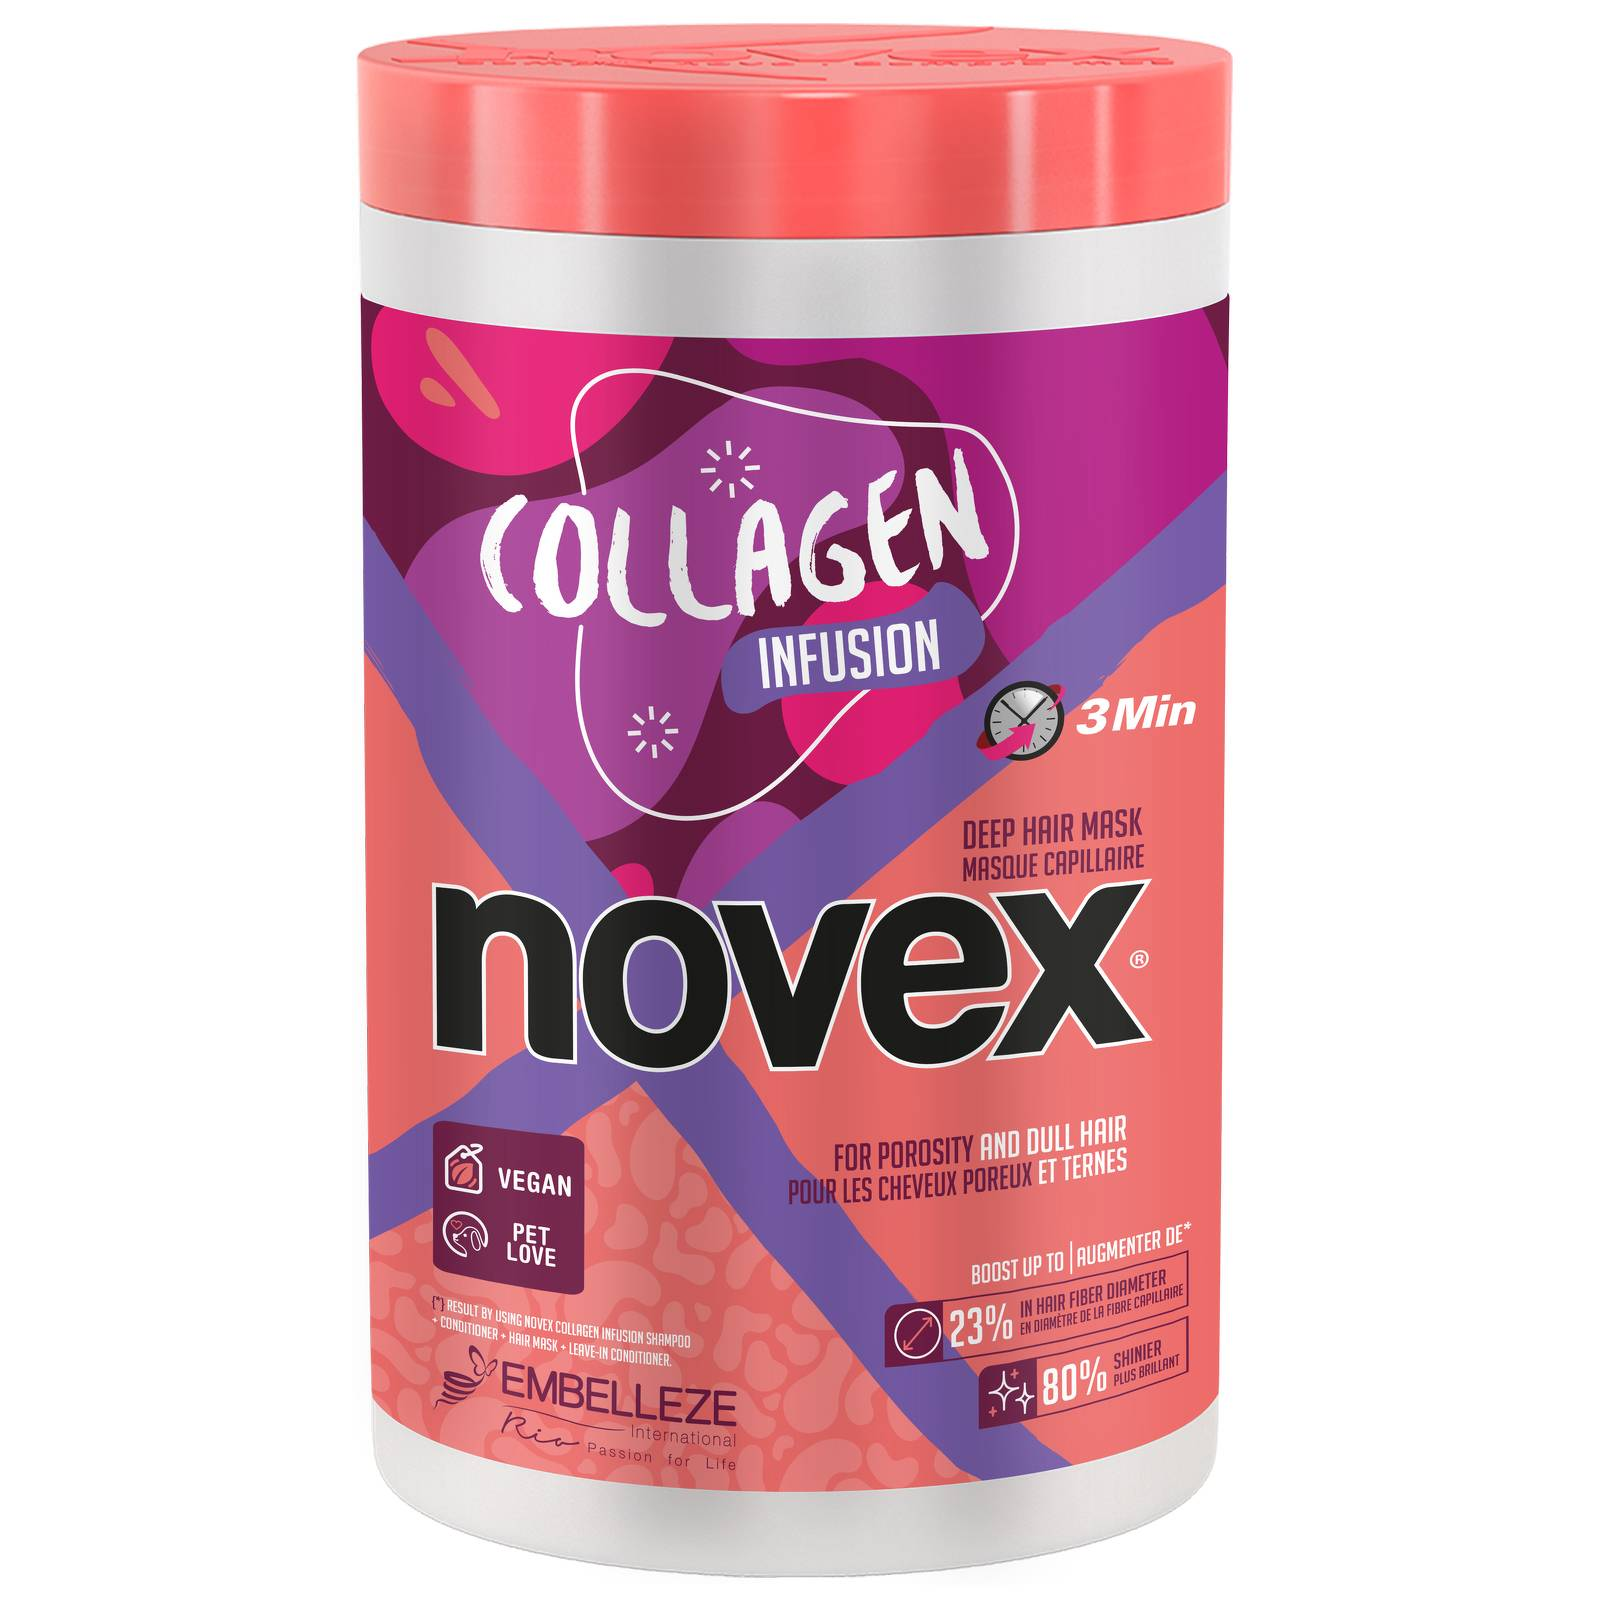 Novex - Collagen Infusion Hair Mask 1kg for Women